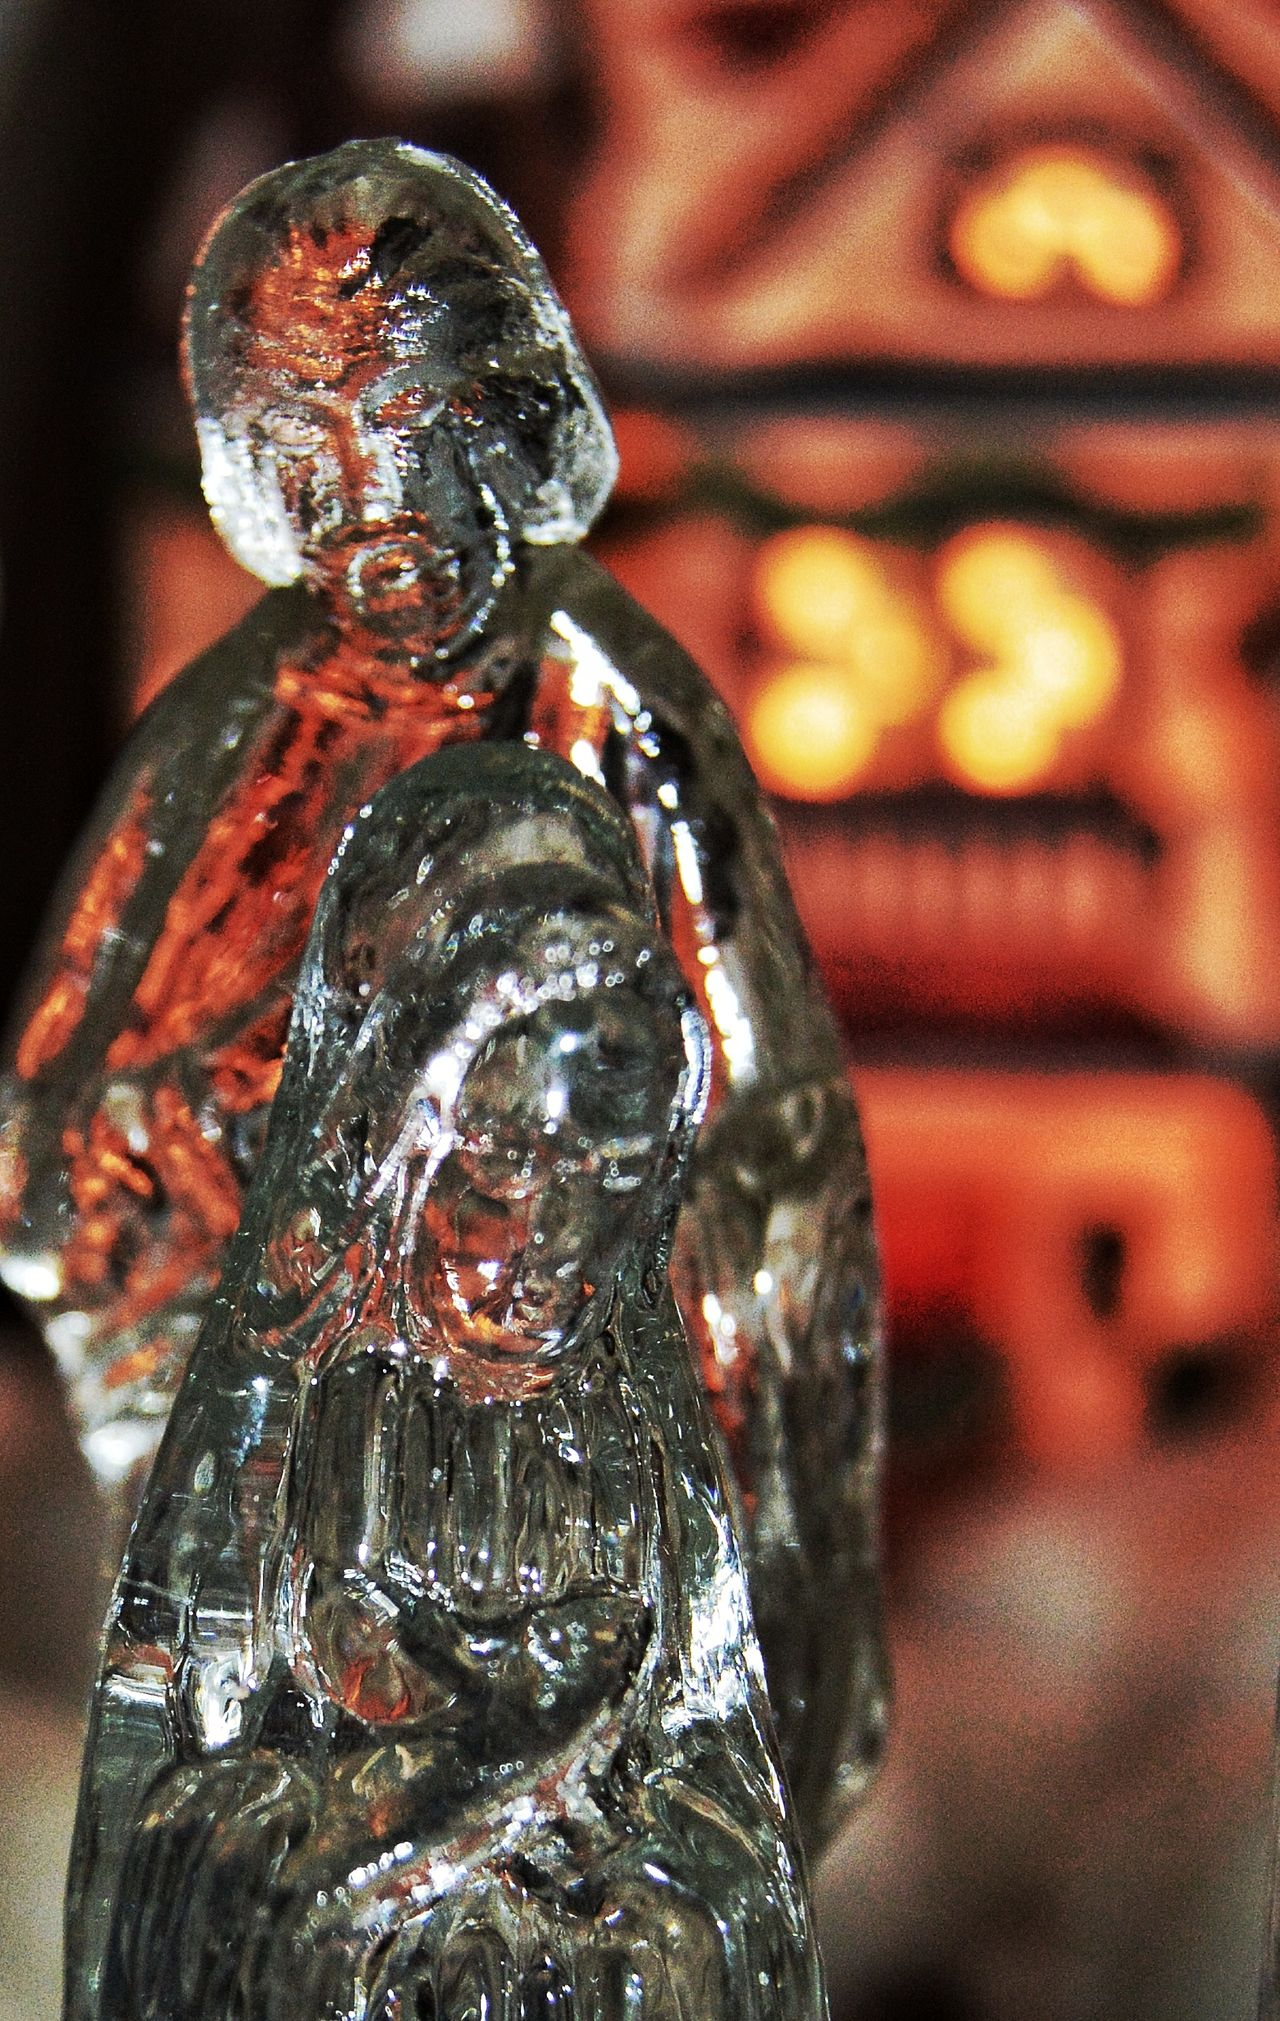 Mary and wiseman Christmas Close-up Crystal Holiday Illuminated Indoors  Lights In House No People